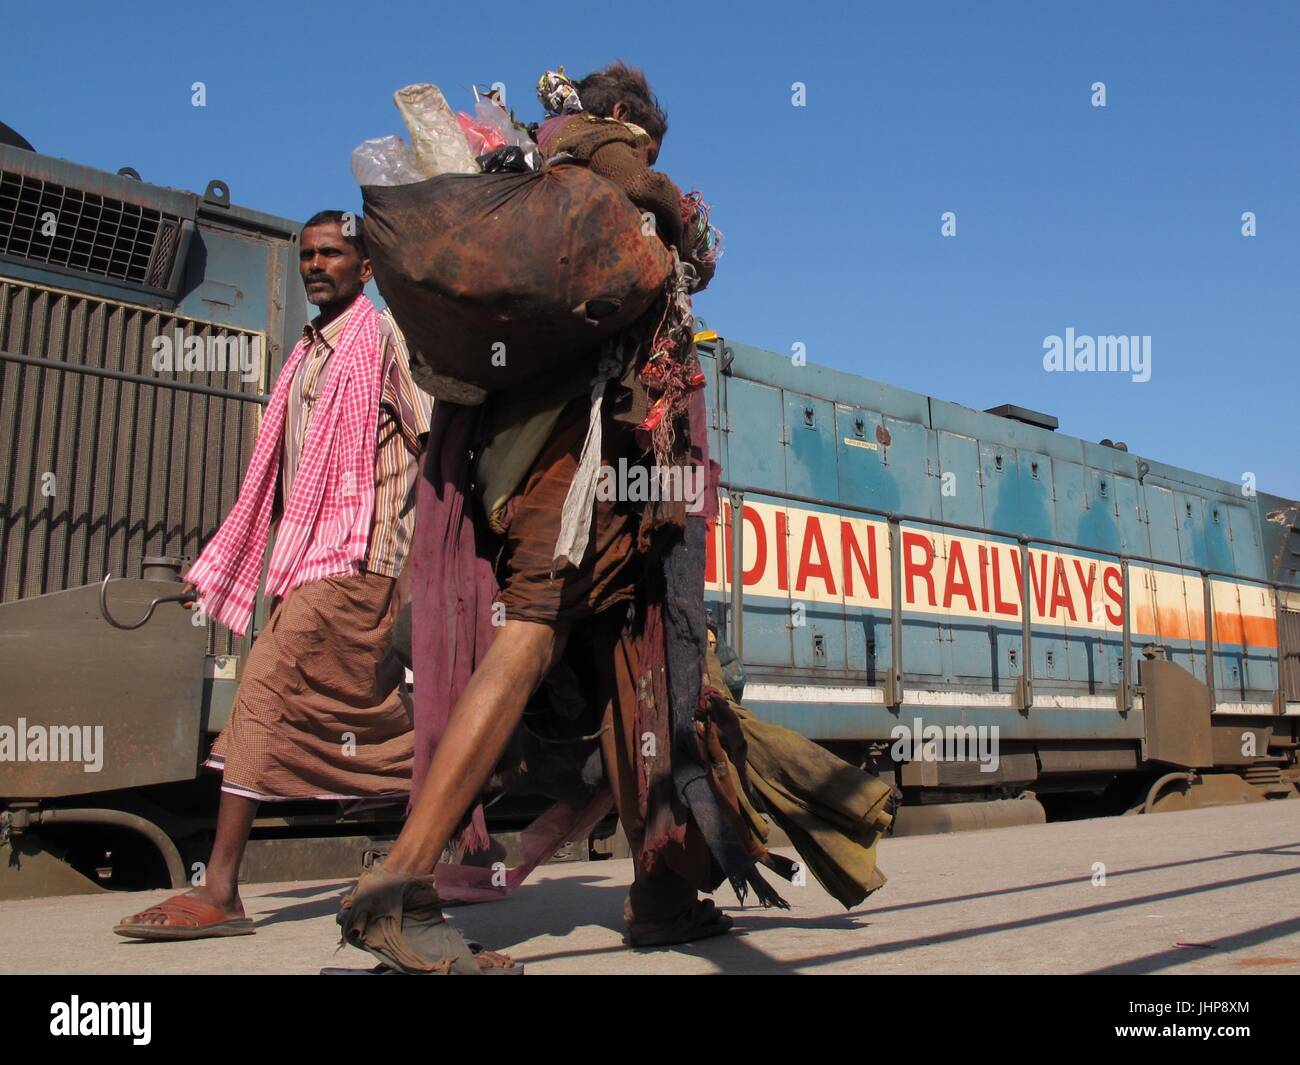 Life at an Indian train station - Stock Image